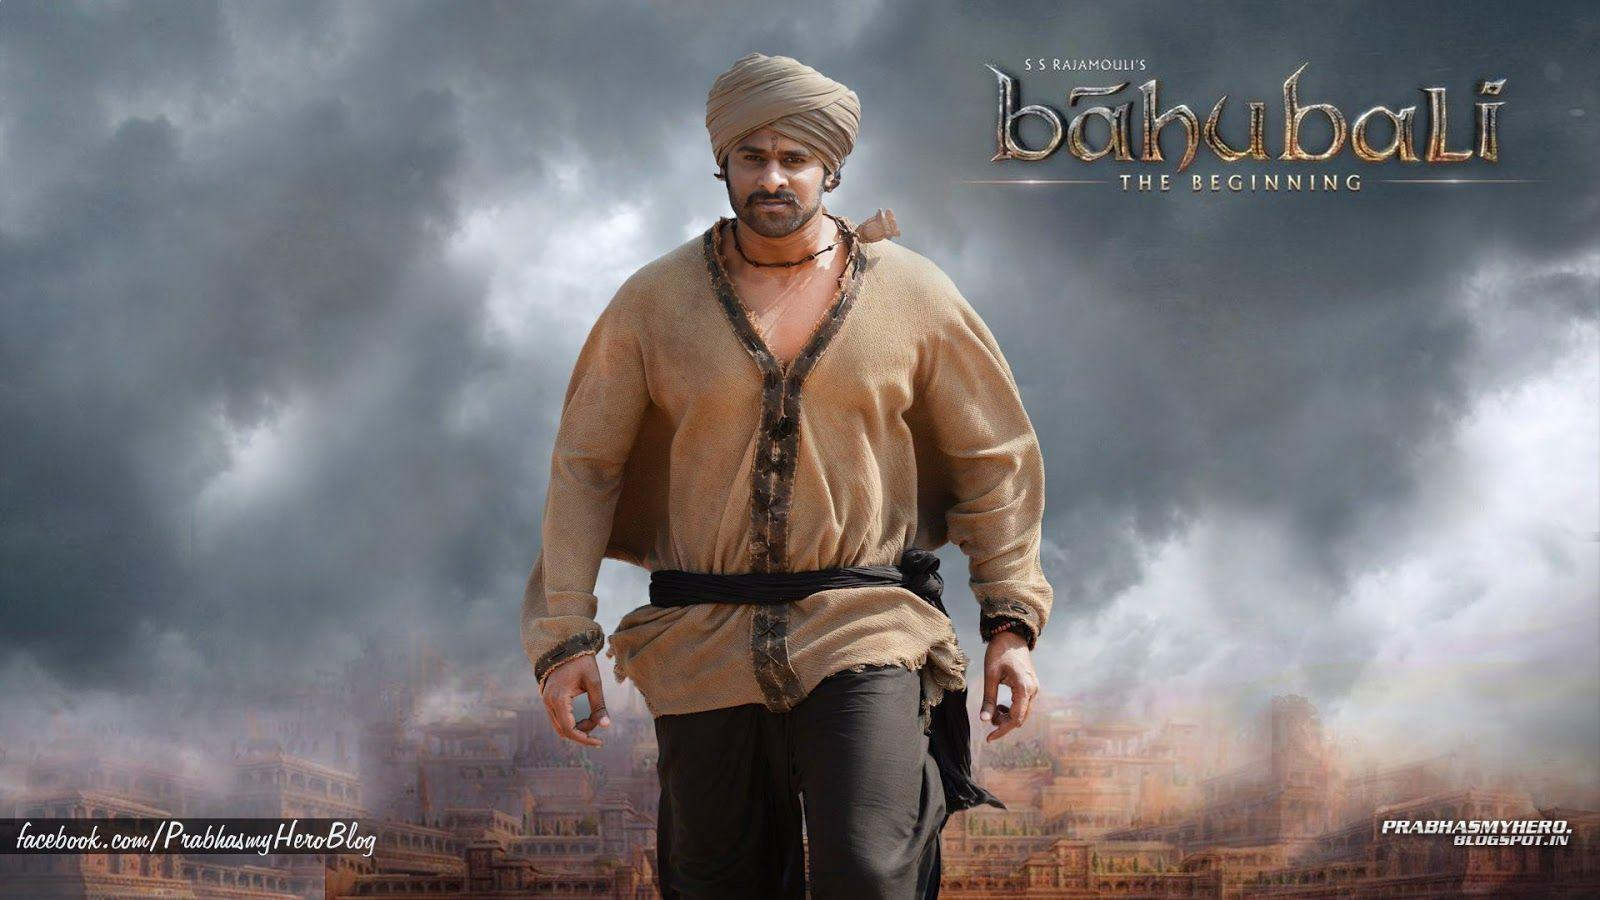 Baahubali Posters and Wallpapers - Prabhas Fans Forever